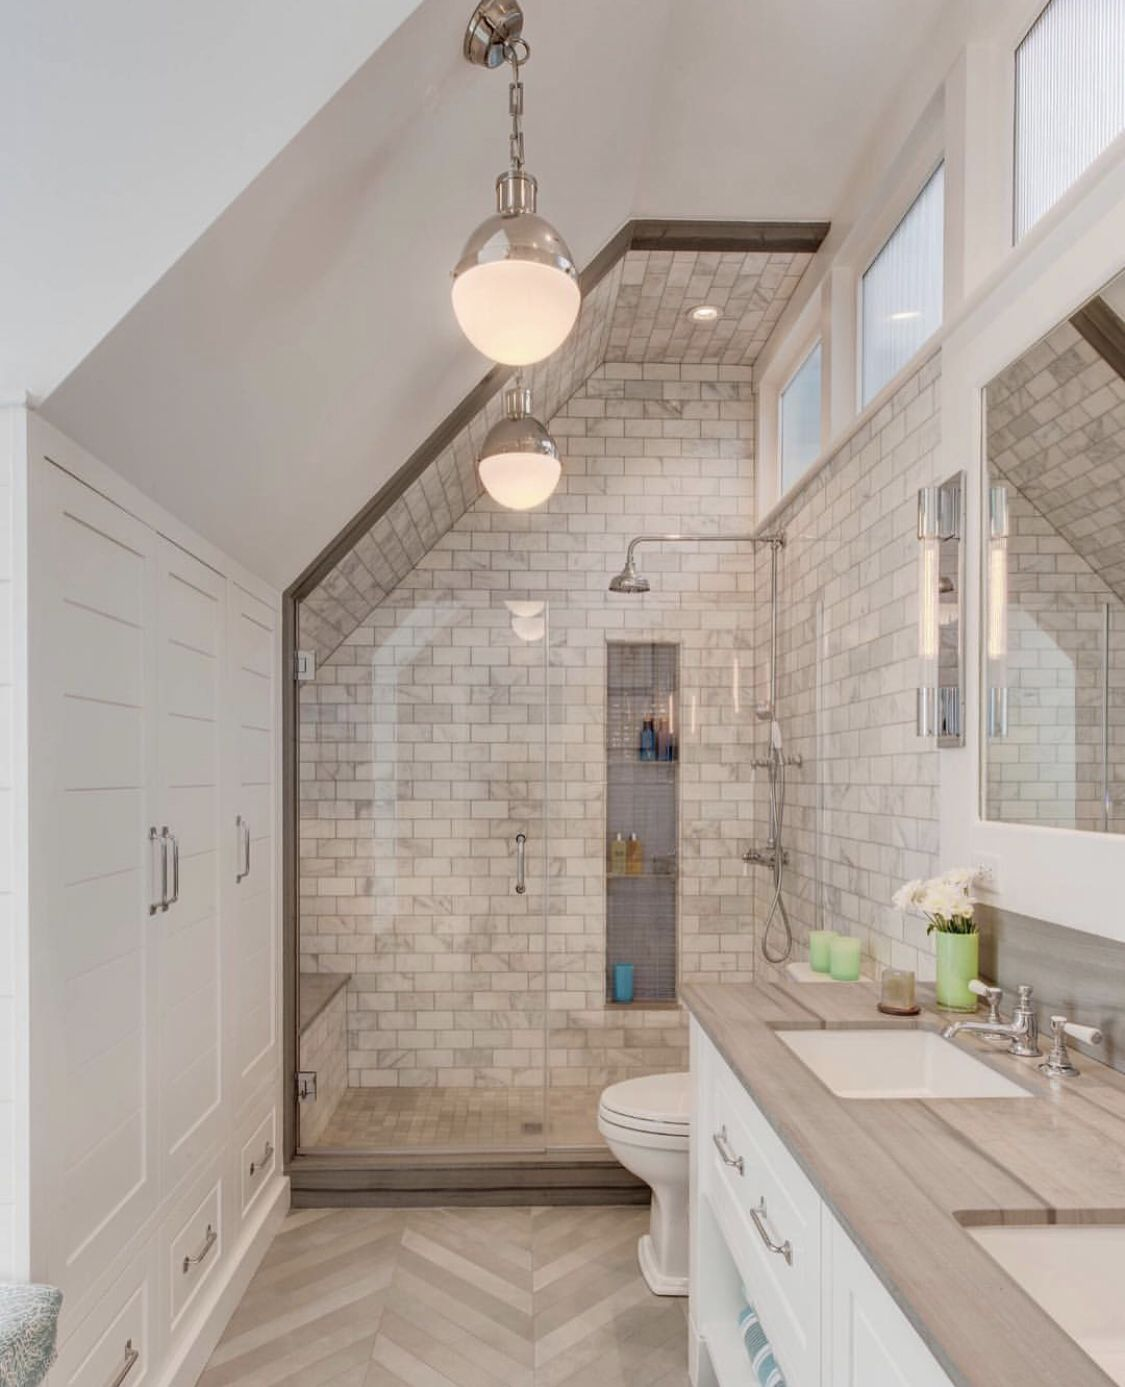 Pin By Chandler Cleveland On Master Bath And More House Design Bathrooms Remodel Home